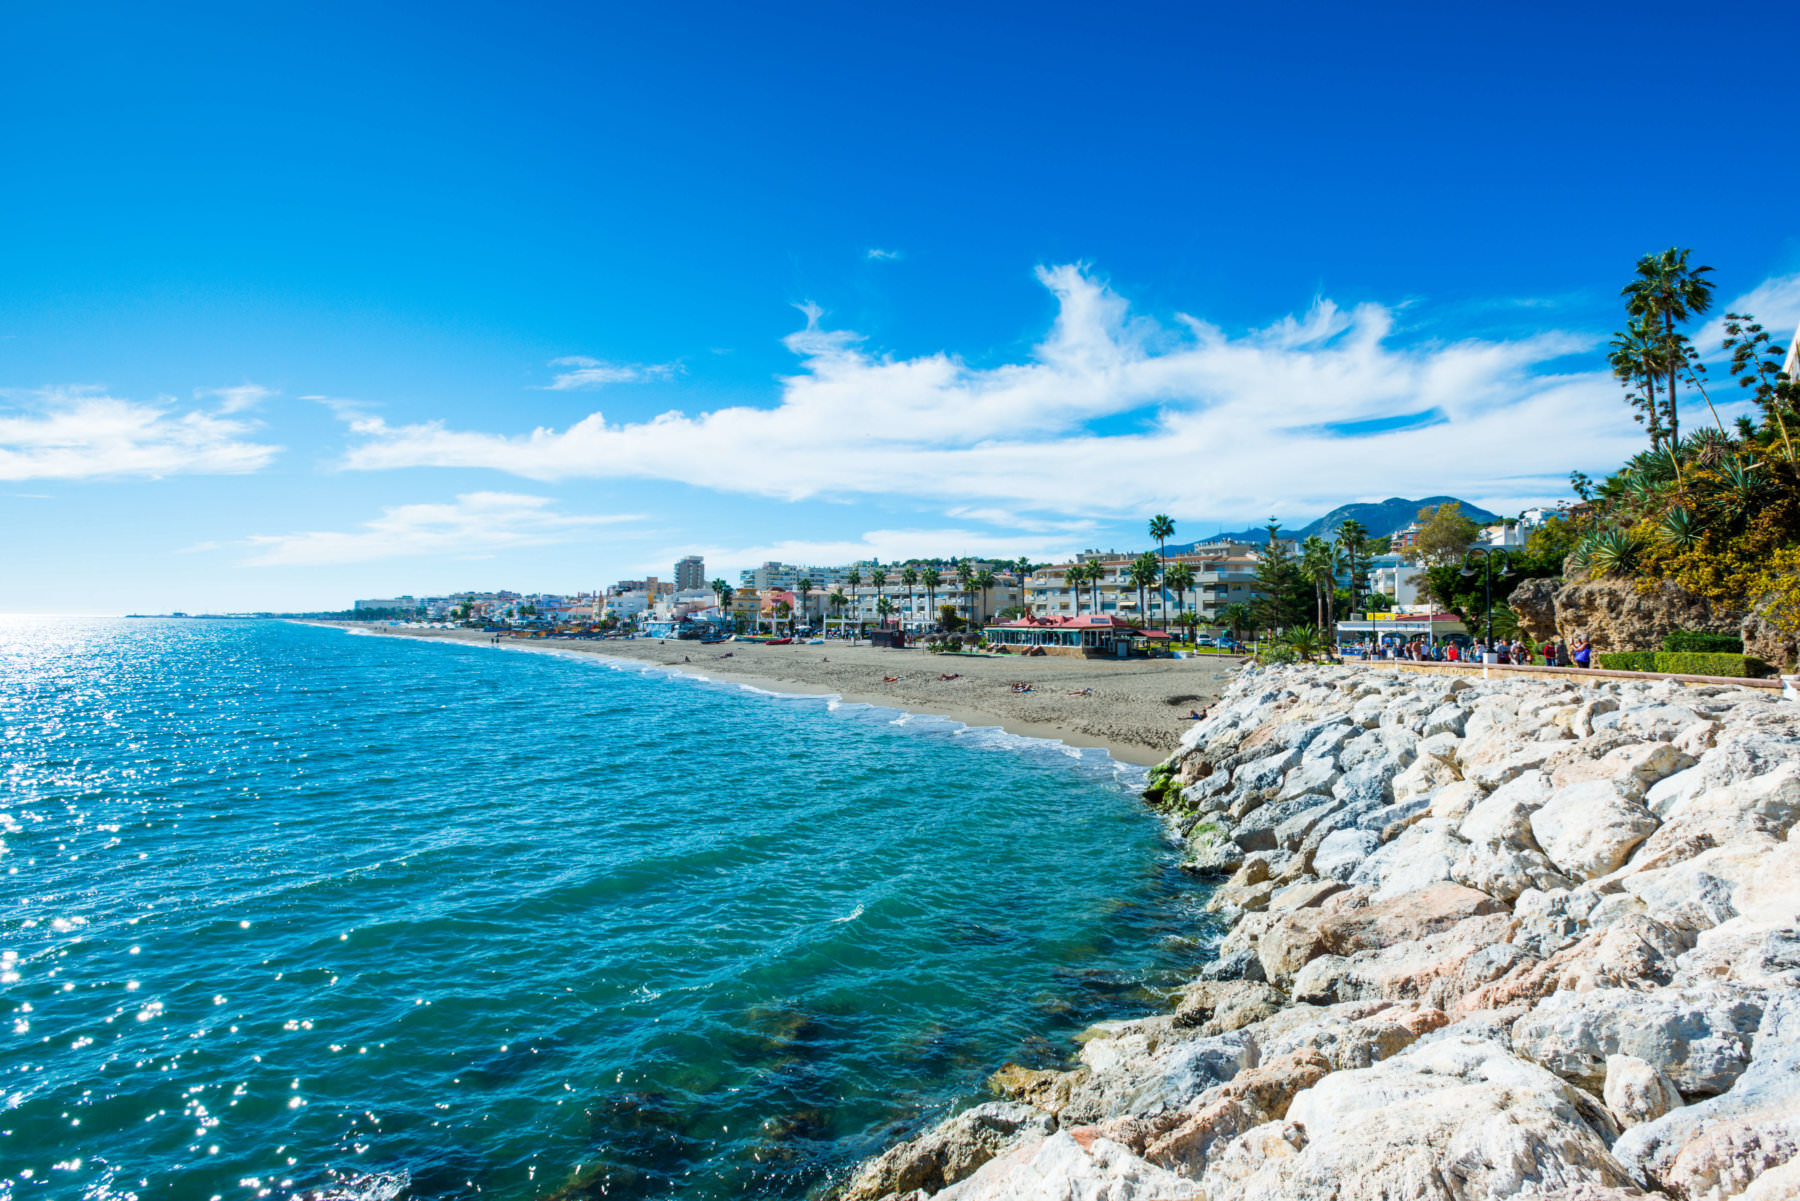 The resort town of Torremolinos